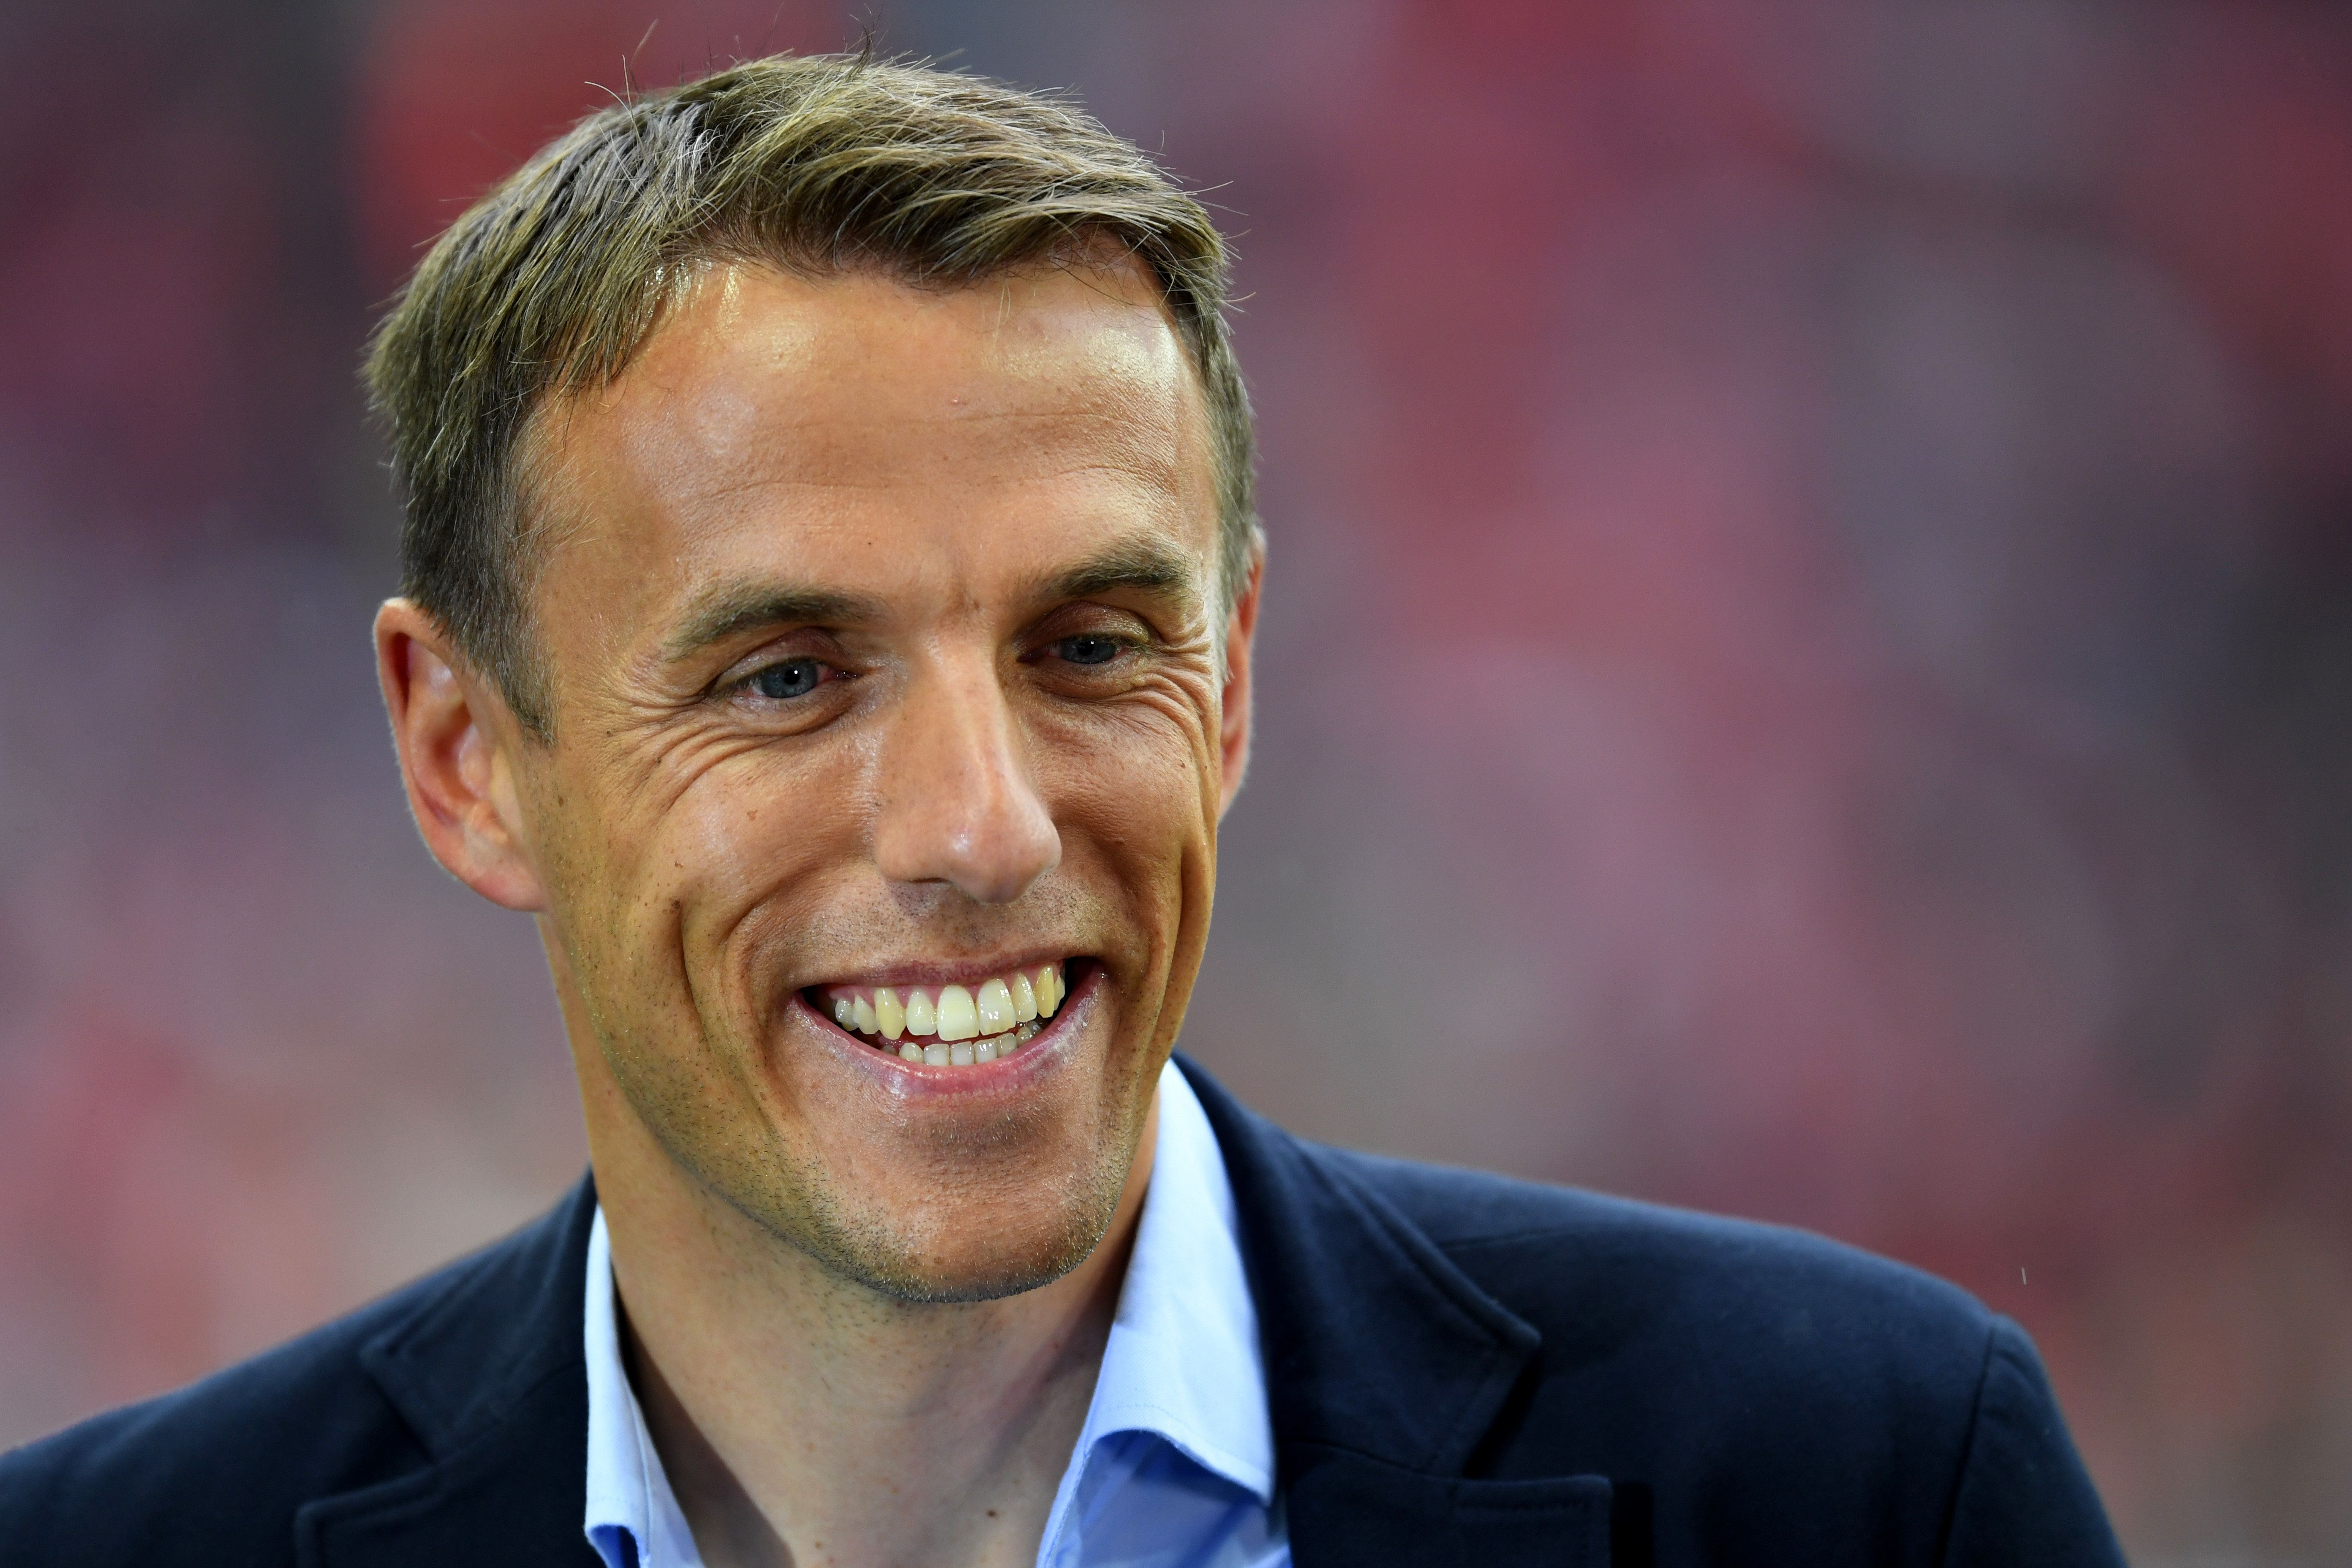 Phil Neville Deletes Twitter Account After Old Sexist Posts